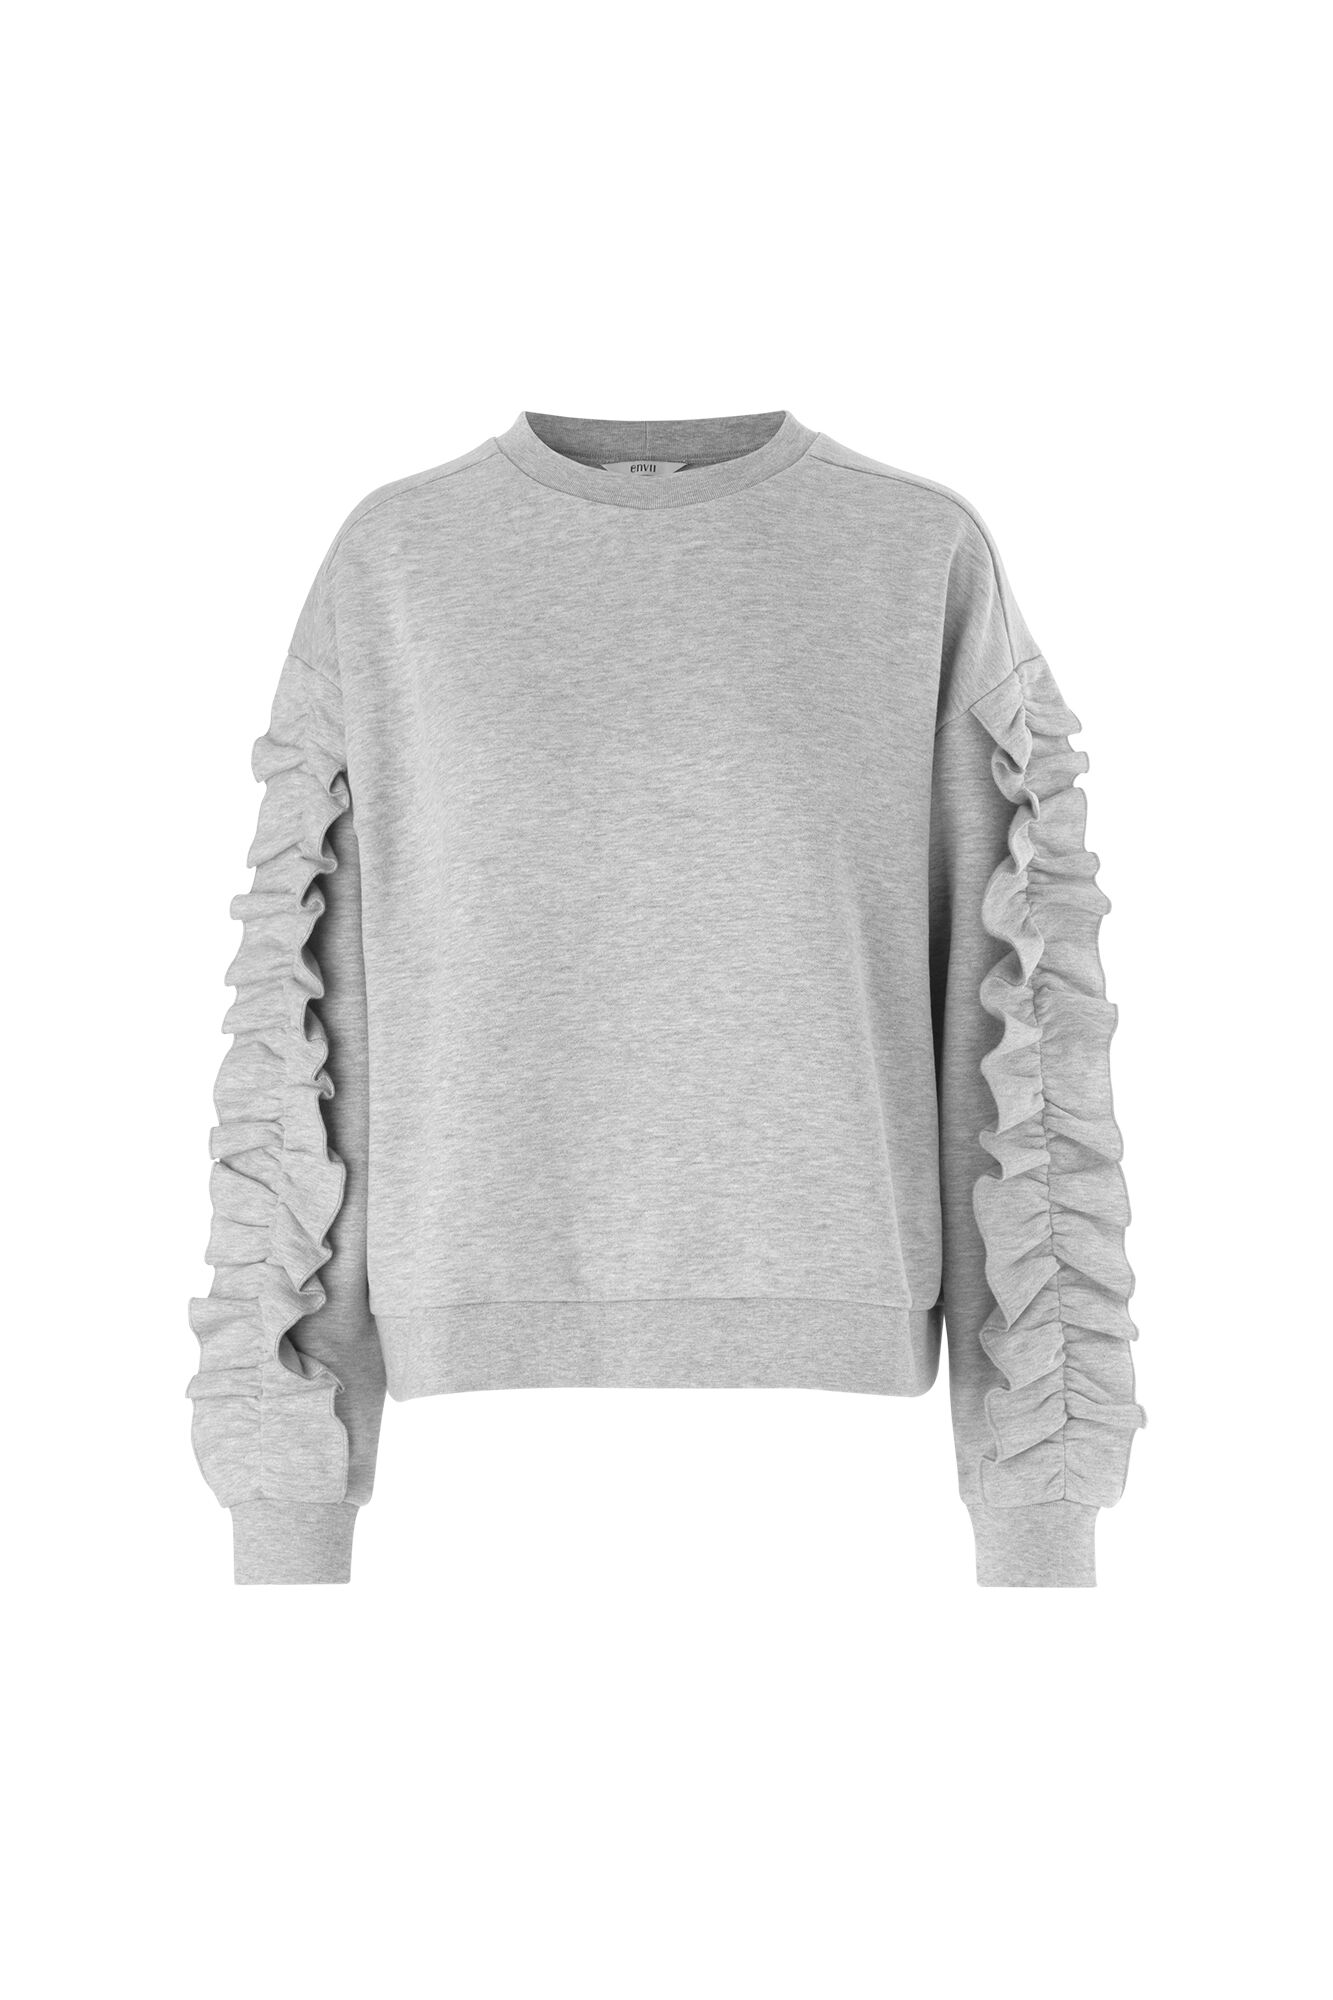 ENSLALOM LS SWEAT 5955